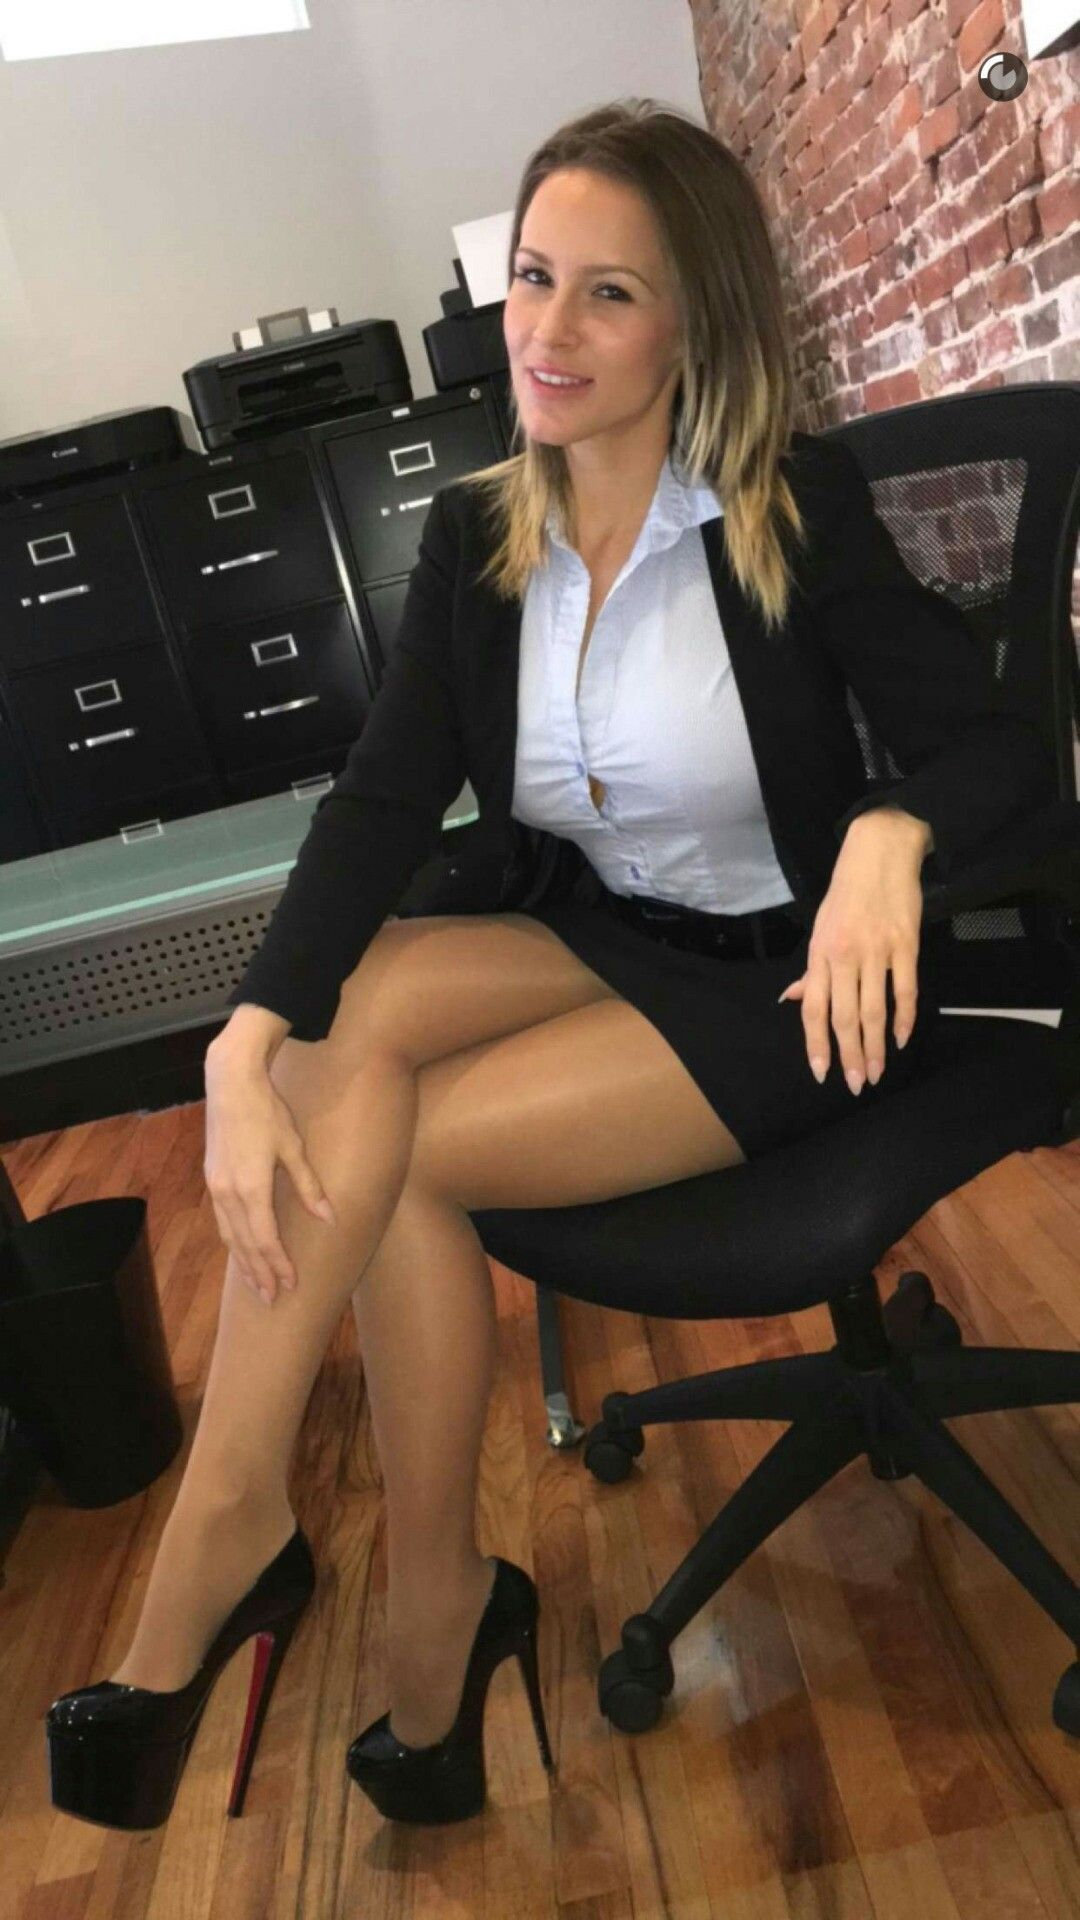 Business women pantyhose high heels